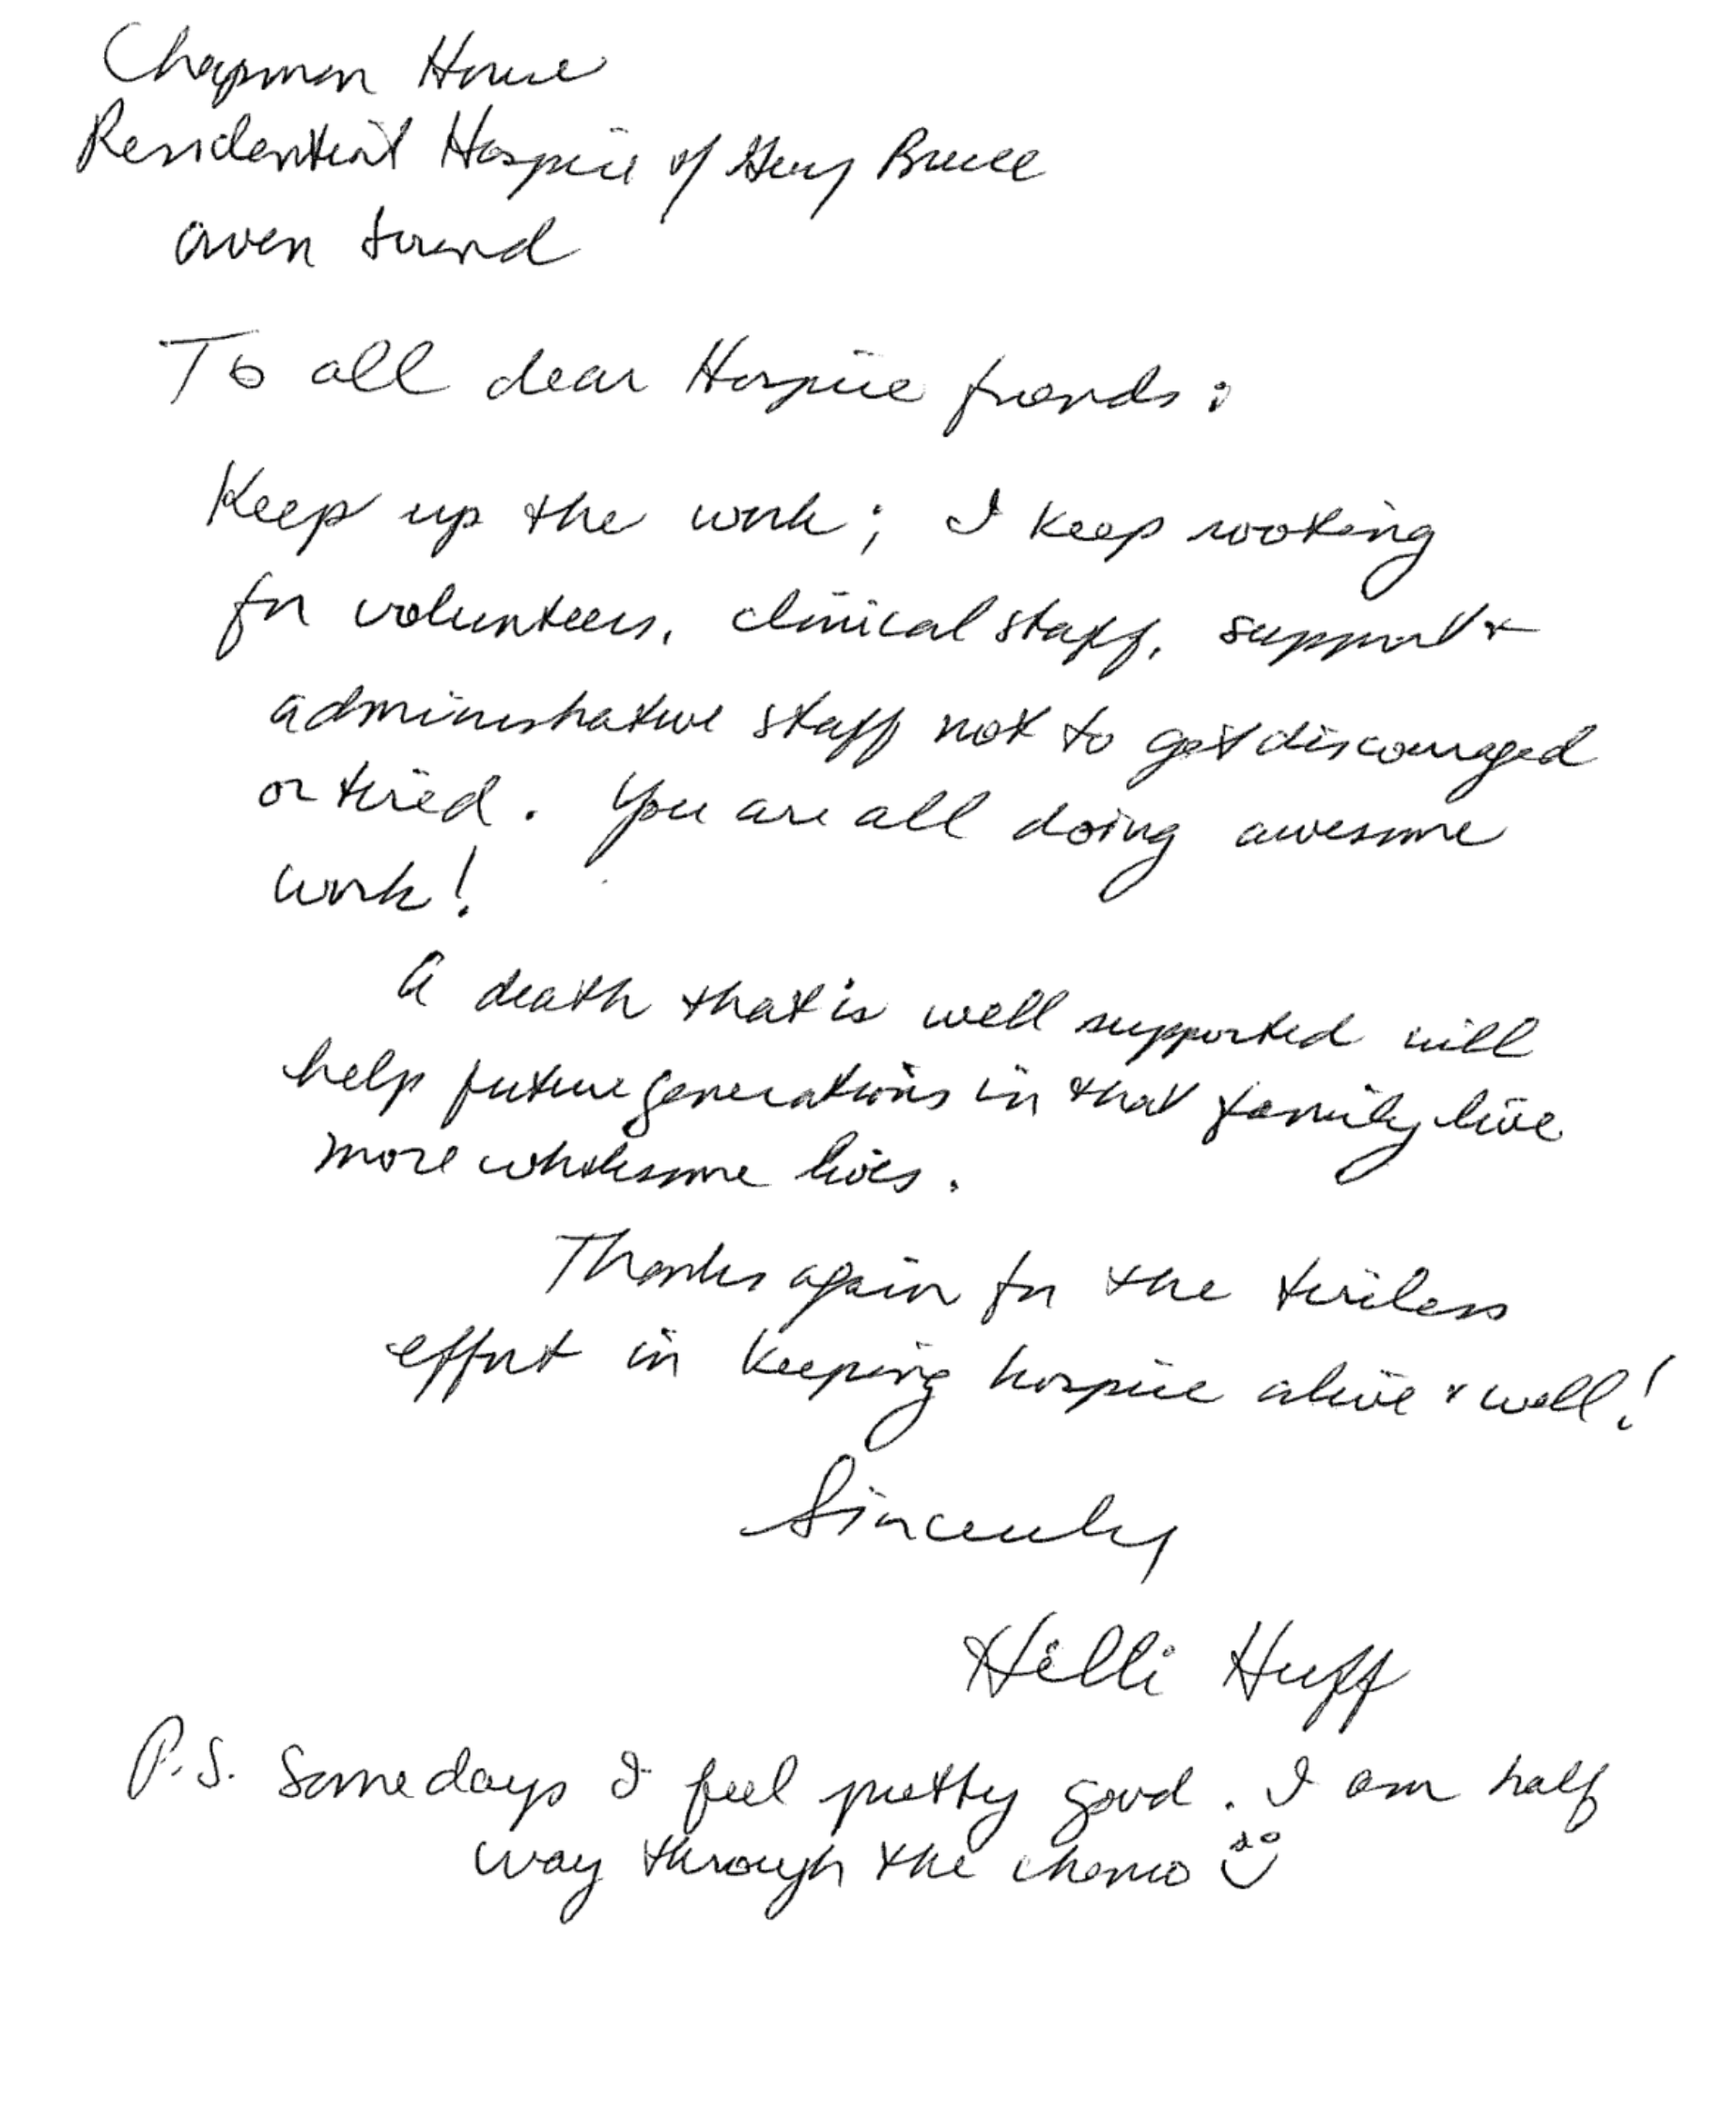 Hilly Letter To All.png